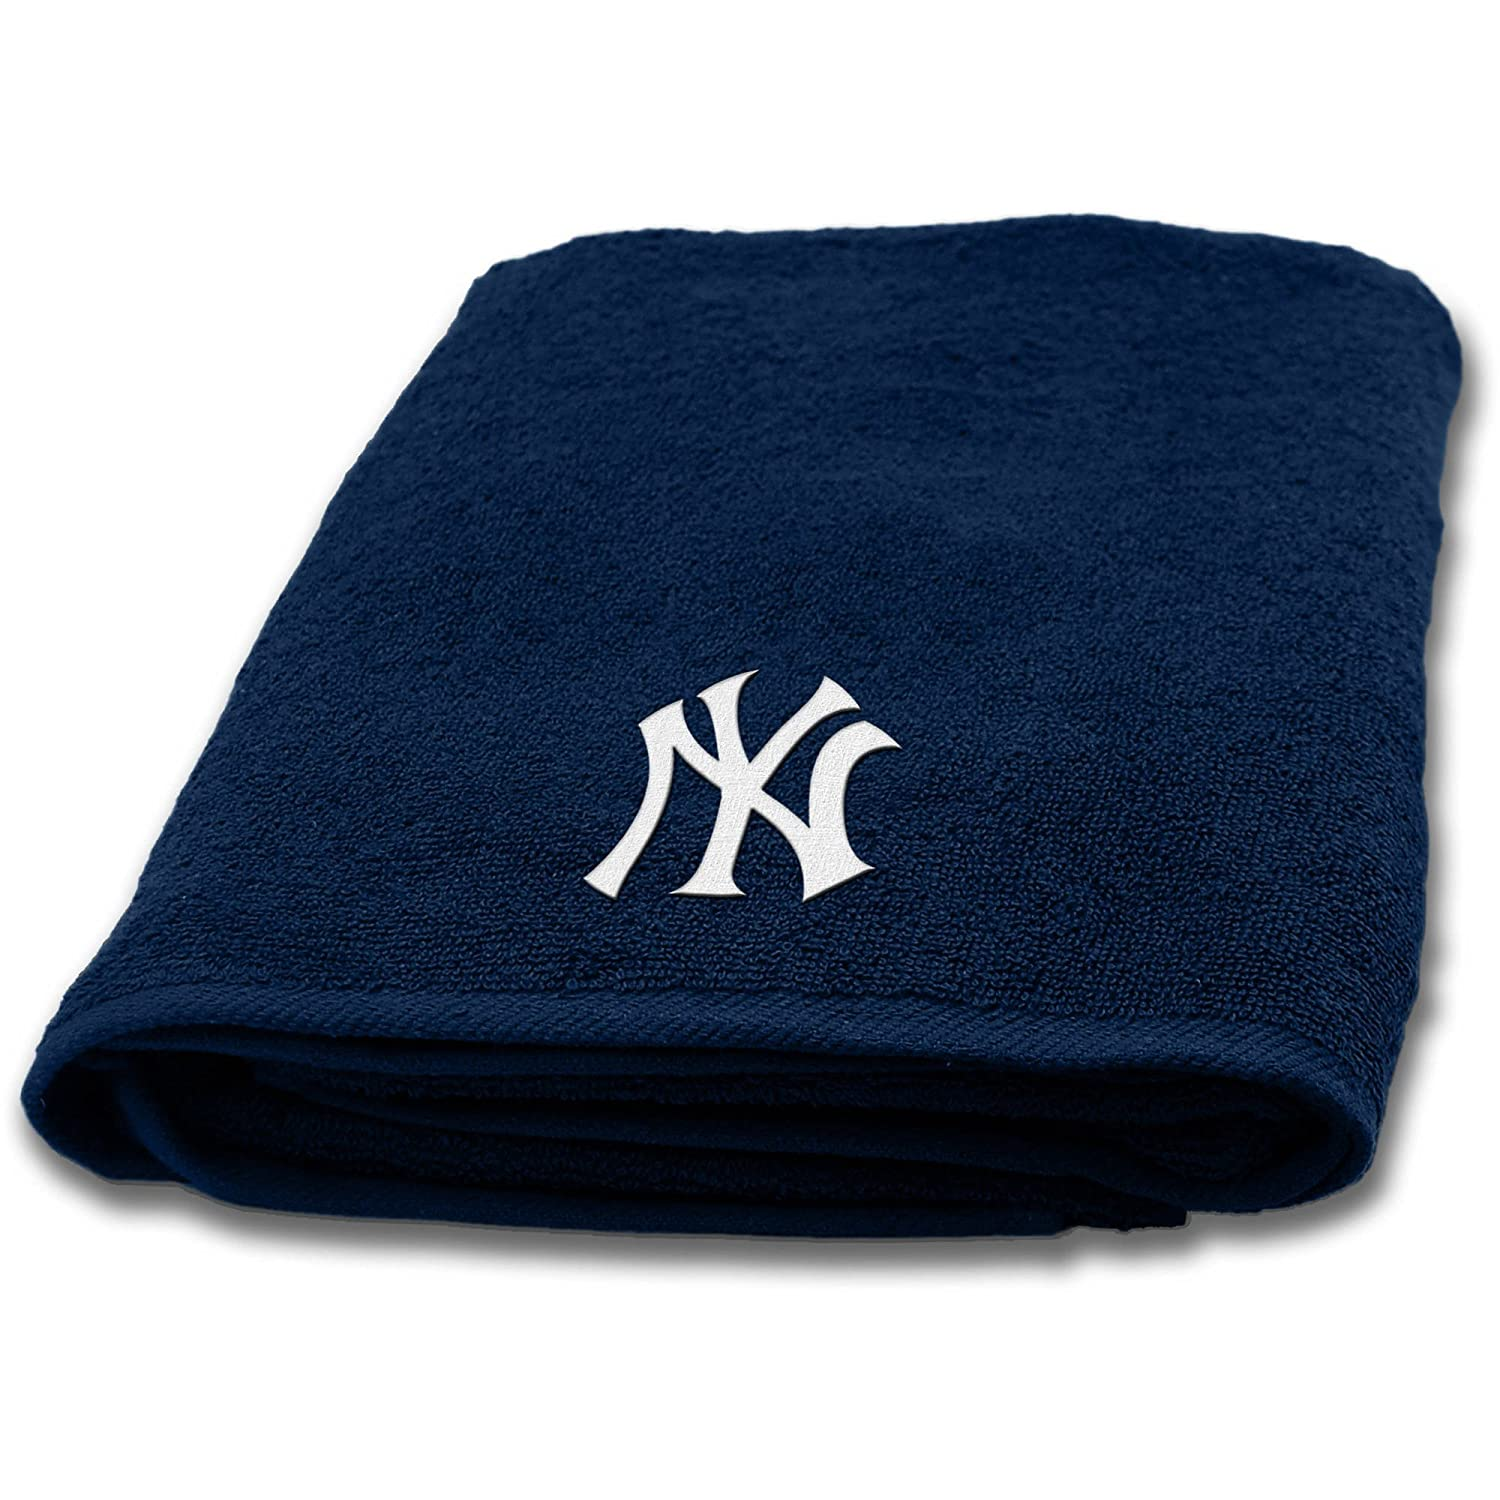 MLB New York Yankees 18 Piece Bath Ensemble Includes 1 Shower Curtain